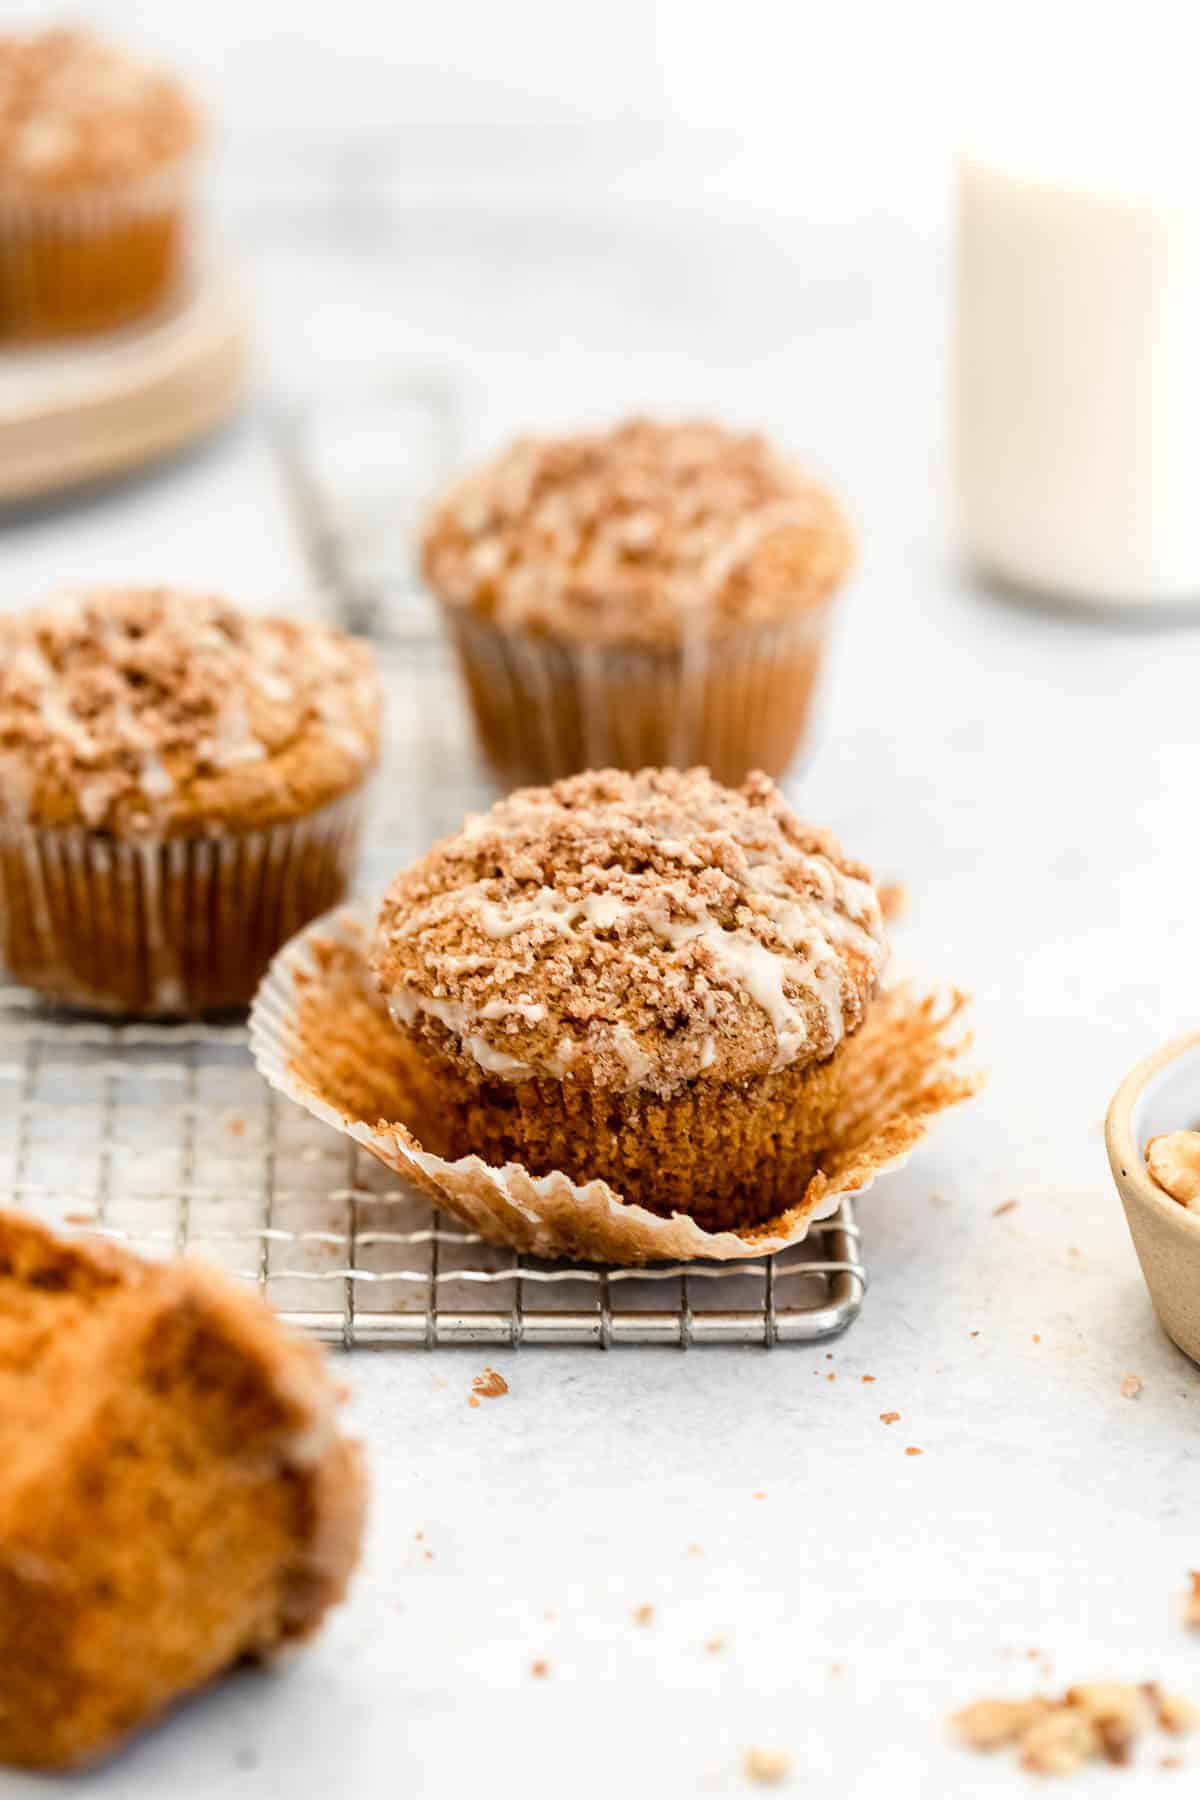 gluten free carrot cake muffins on a wire rack